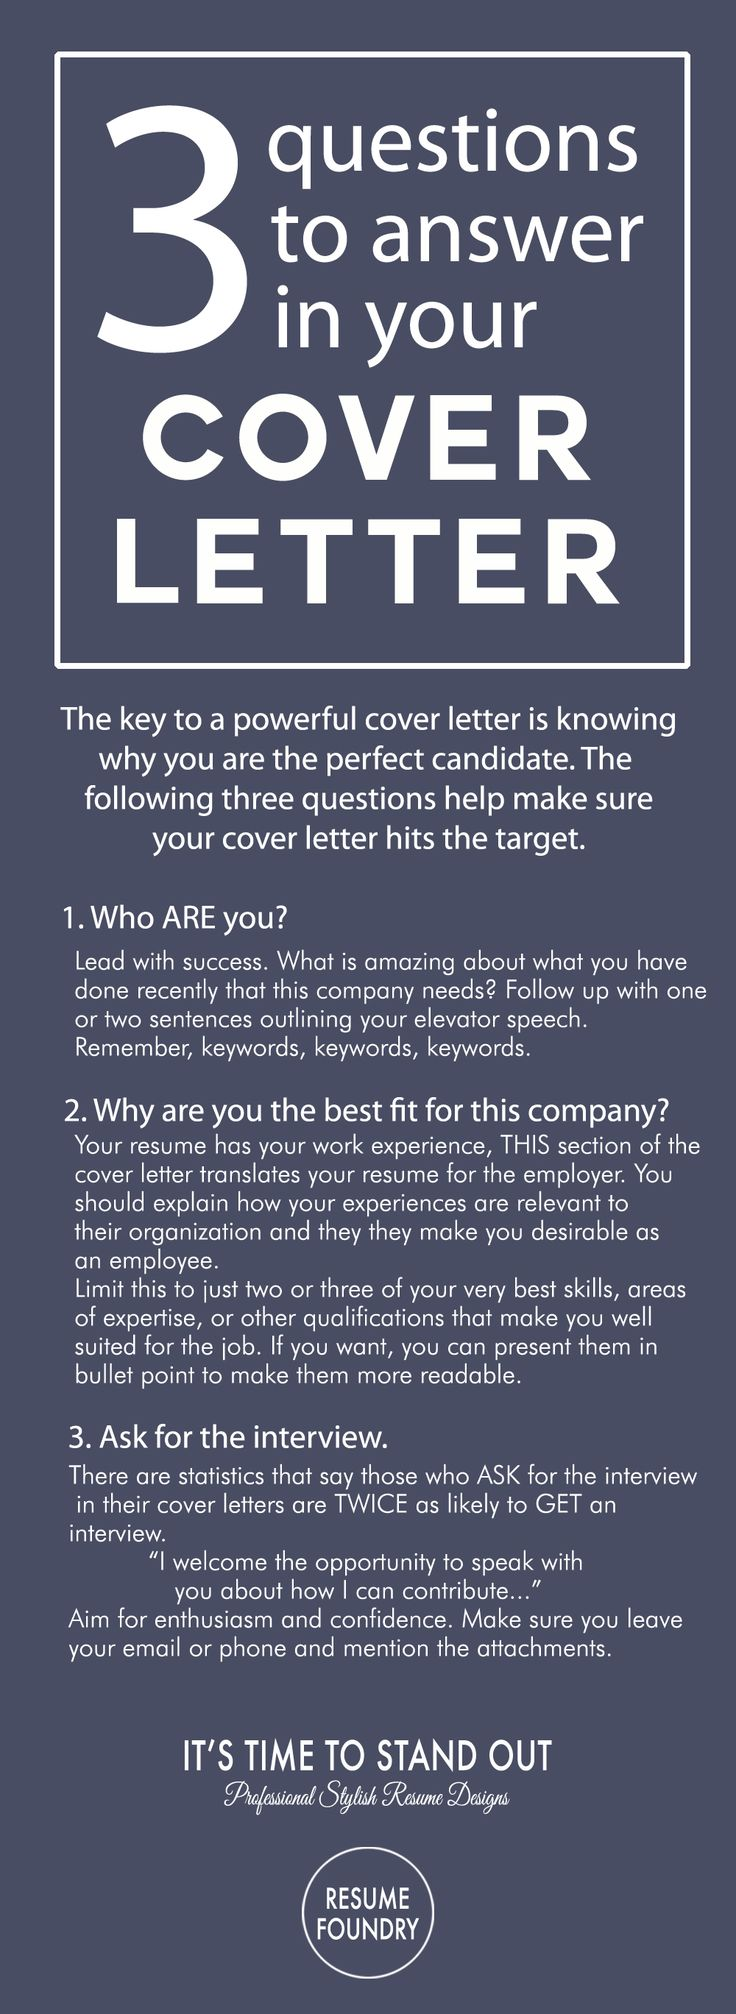 cover letter tips outline how to write a cover letter - What To Say In A Cover Letter For A Resume